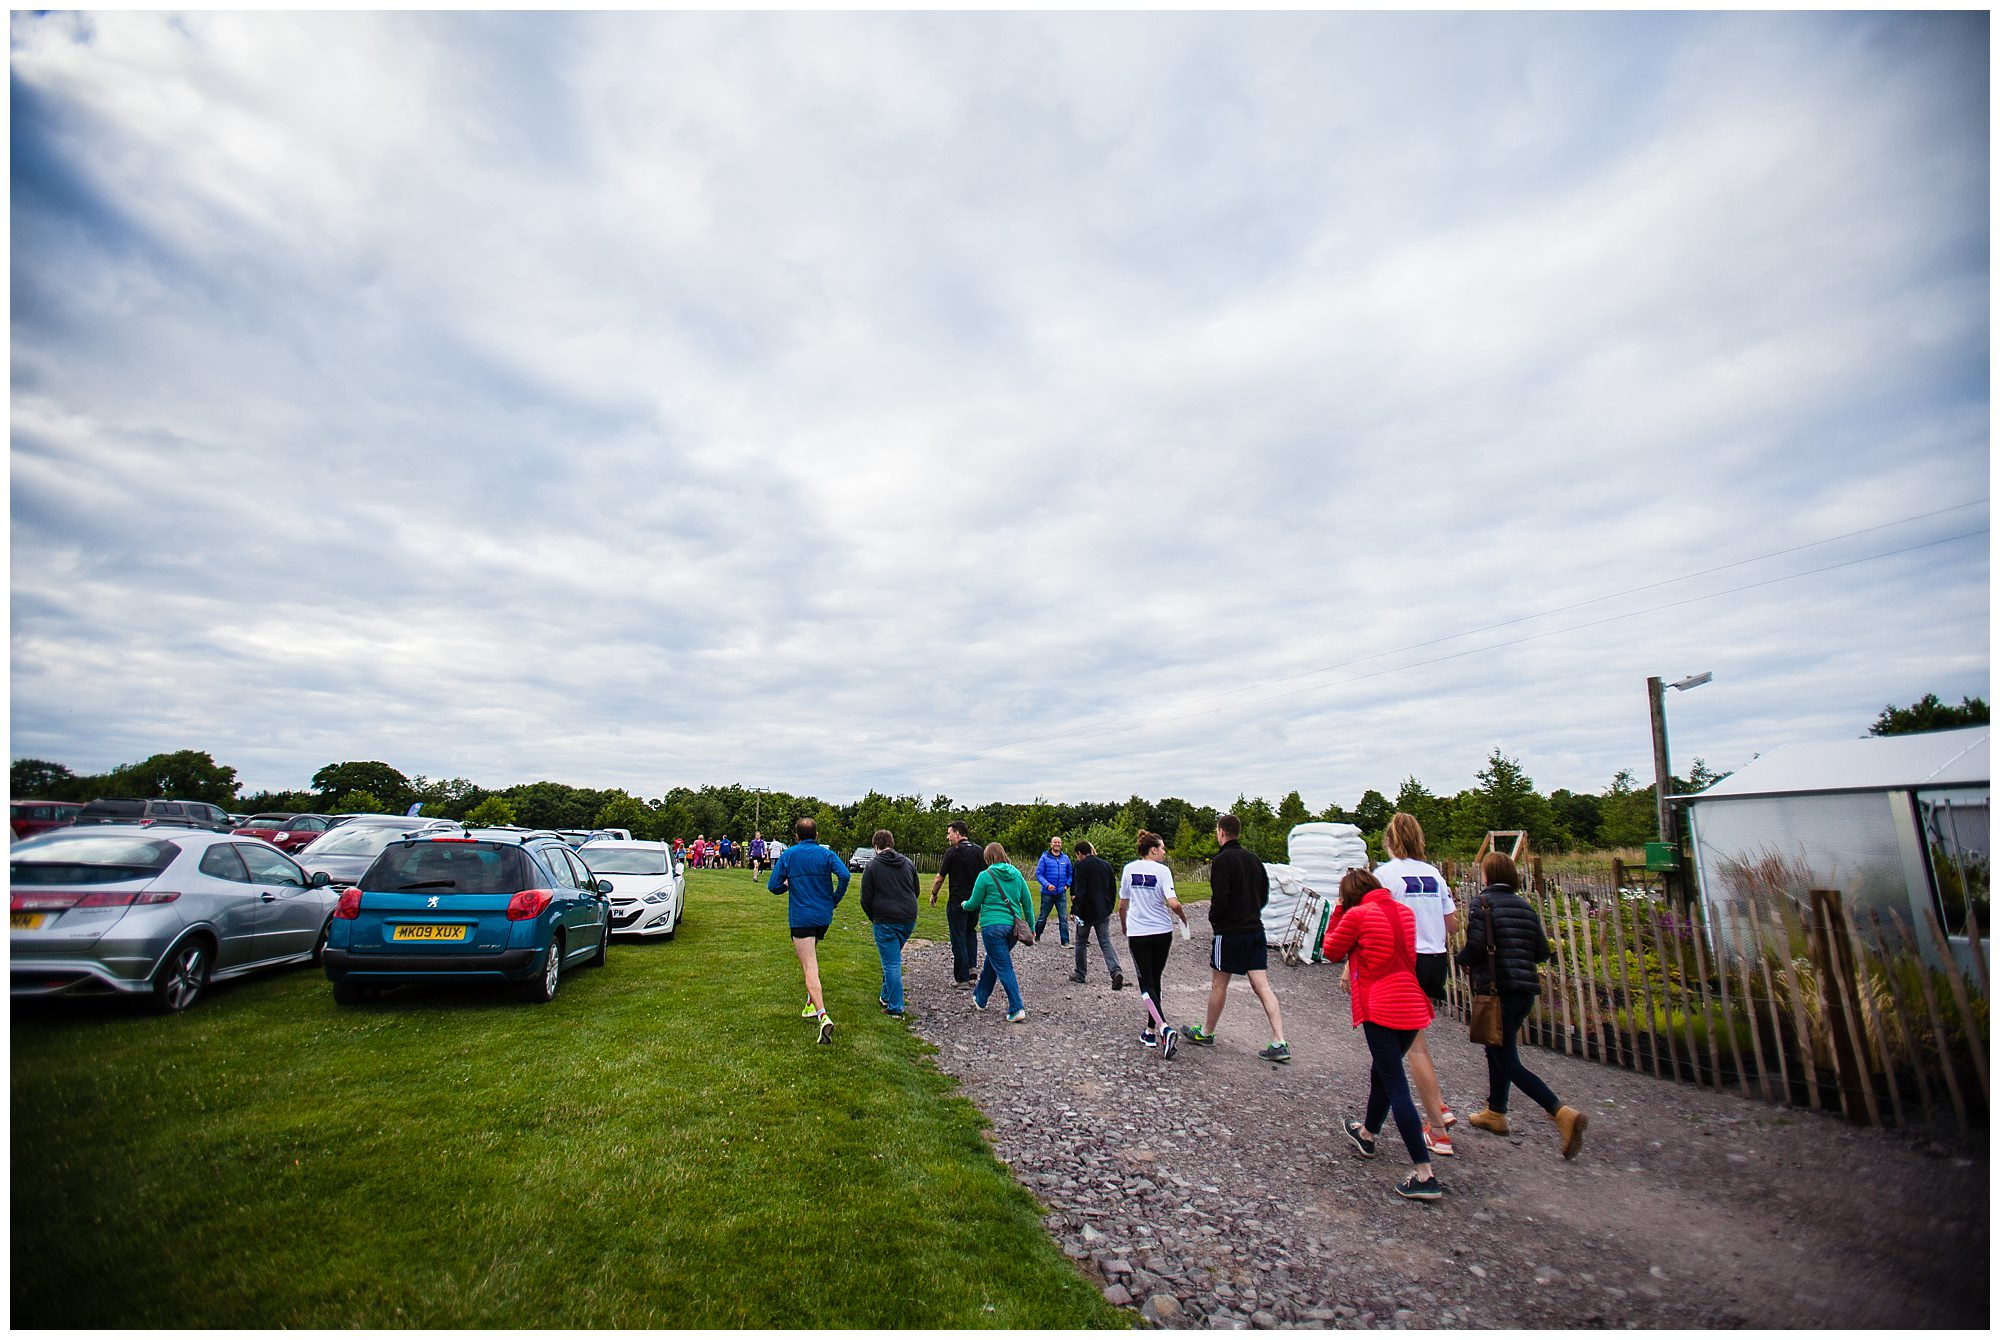 runners ans supporters making their way to the start line - adeford lake event photographer